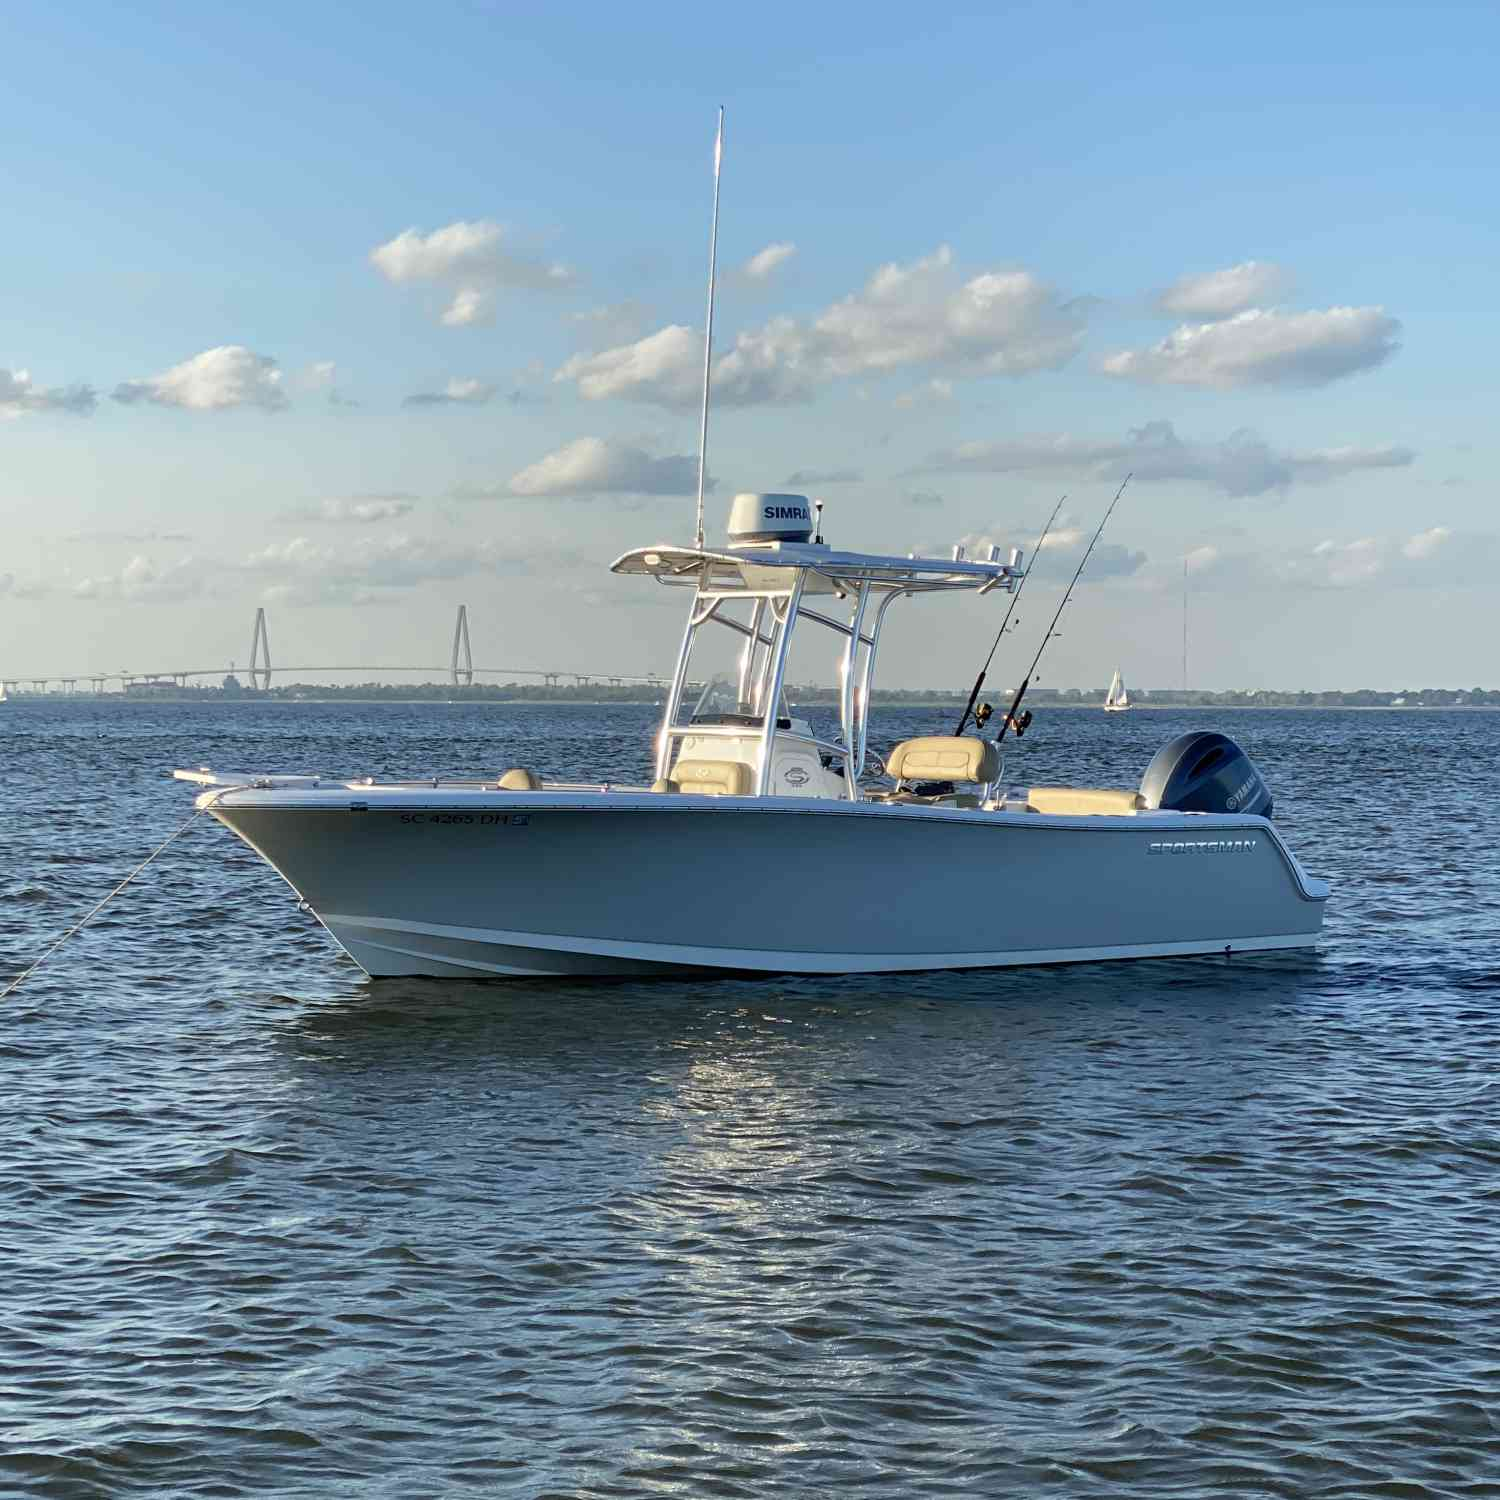 Title: Sportsman Sunday - On board their Sportsman Open 232 Center Console - Location: No Name Beach, Charleston Harbor,. Participating in the Photo Contest #SportsmanDecember2020